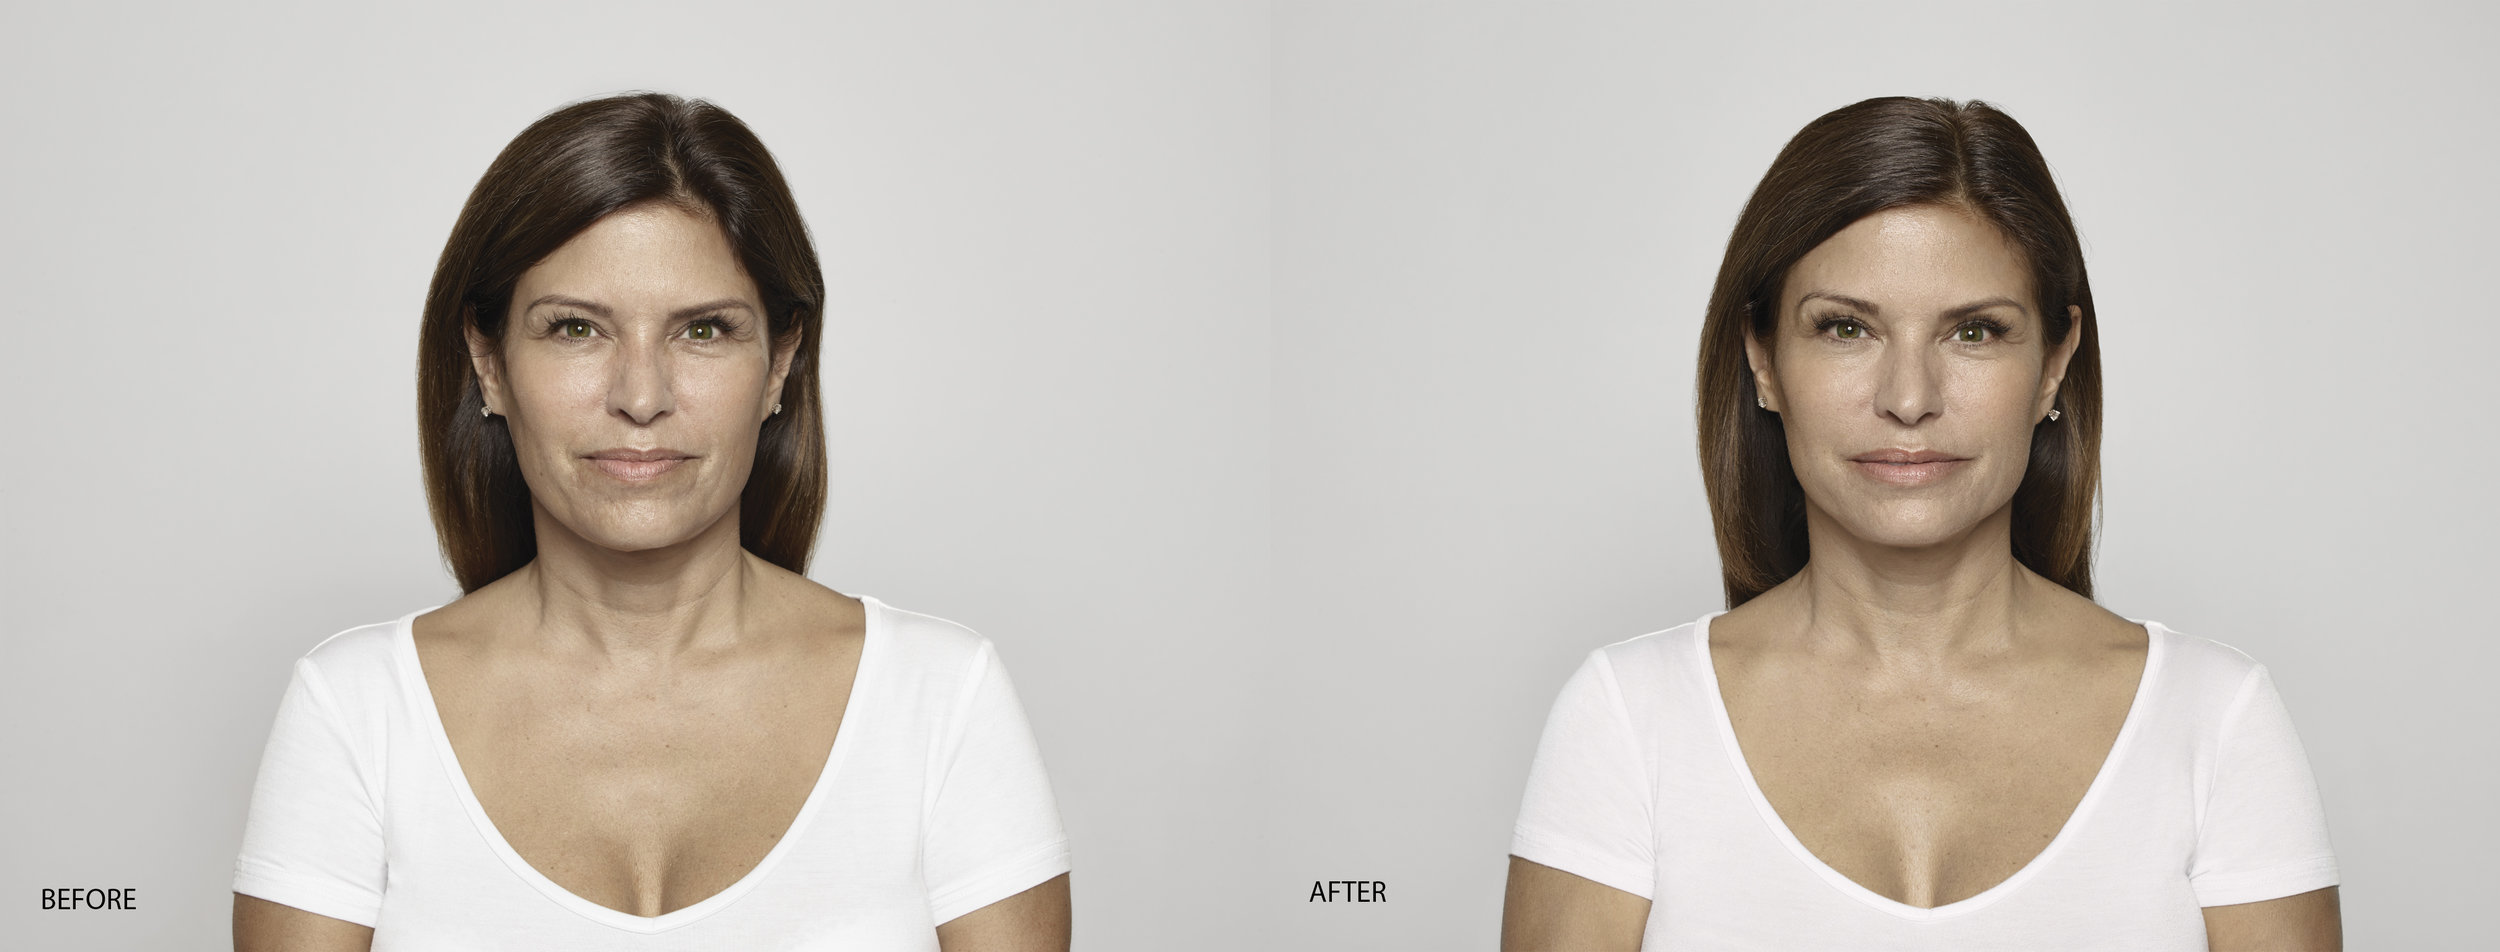 Restylane® - Restylane®can be used to add volume and fullness to the skin to correctmoderate to severe facial wrinkles and folds, such as the lines from your noseto the corners of your mouth (nasolabial folds).Restylane may also be usedfor lip enhancement in patients over 21 years.